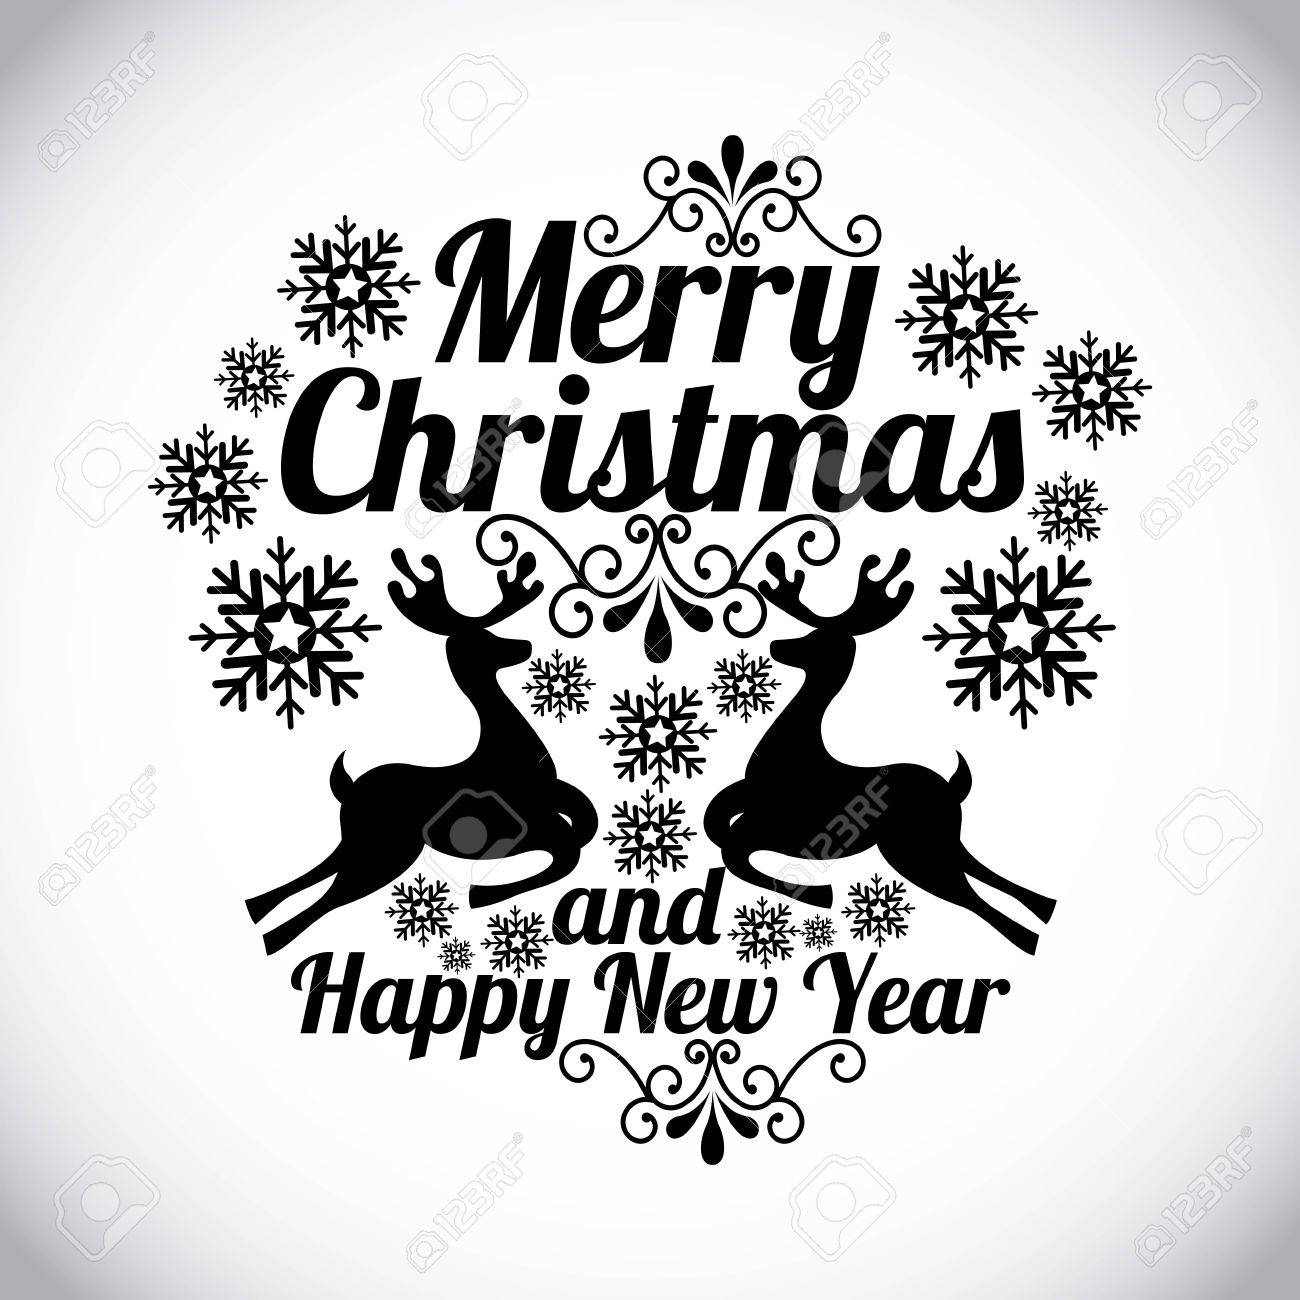 Merry Christmas And Happy New Year Over Gray Background Vector Illustration Stock